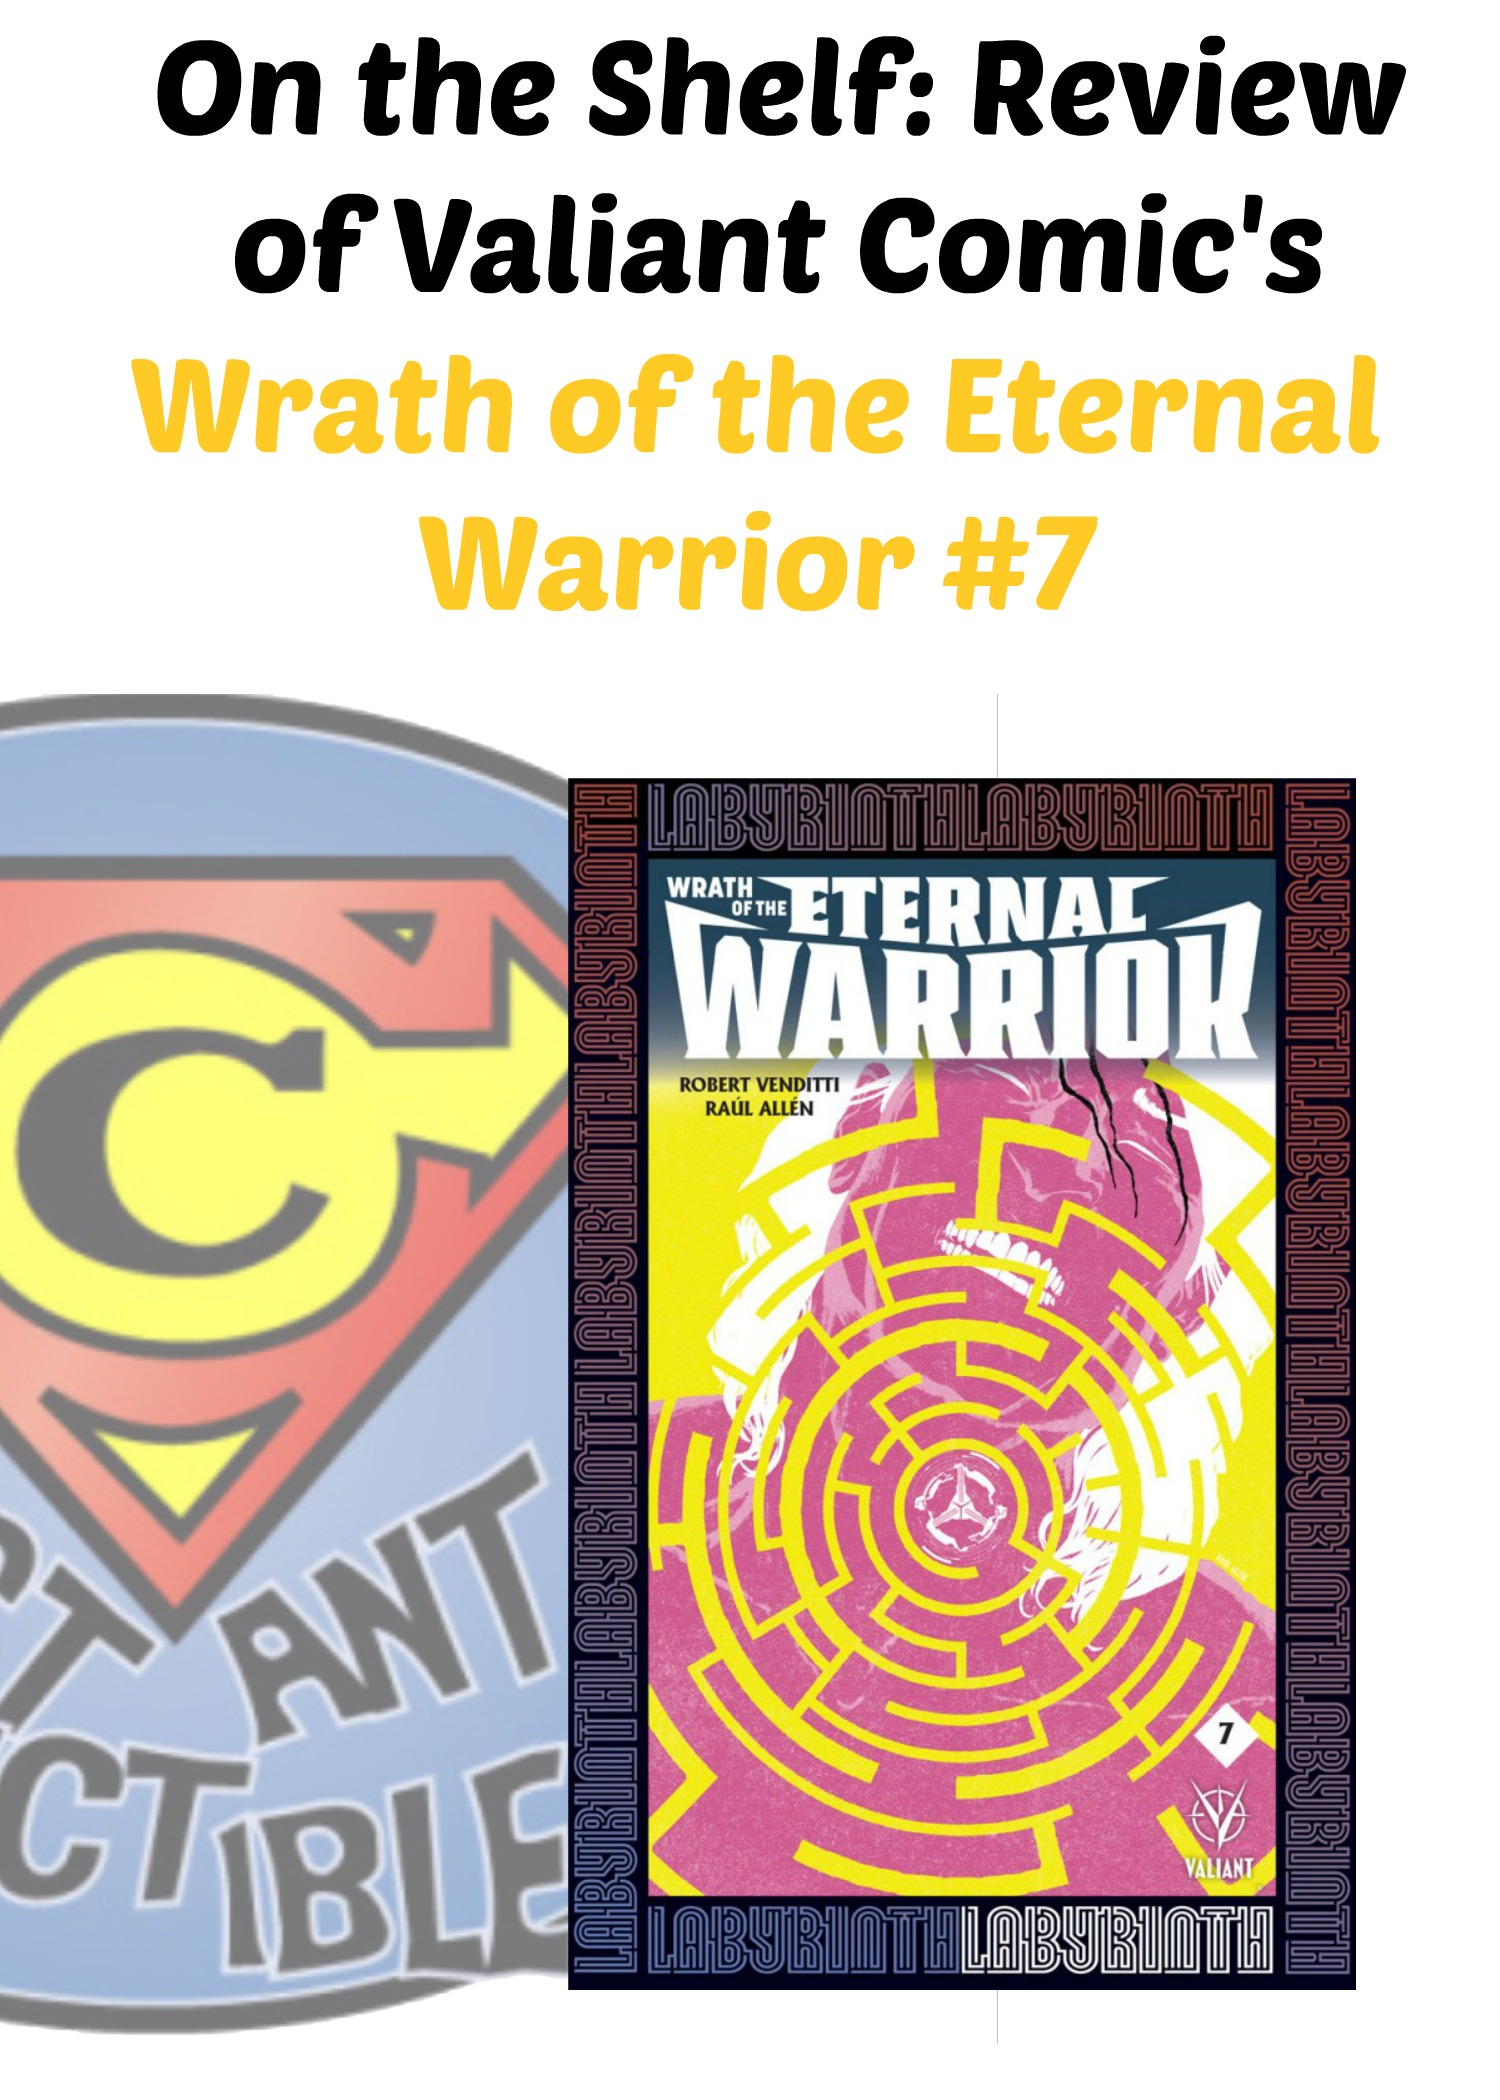 On the Shelf Review of Valiant Comic's Wrath of the Eternal Warrior #7 - Constant Collectible